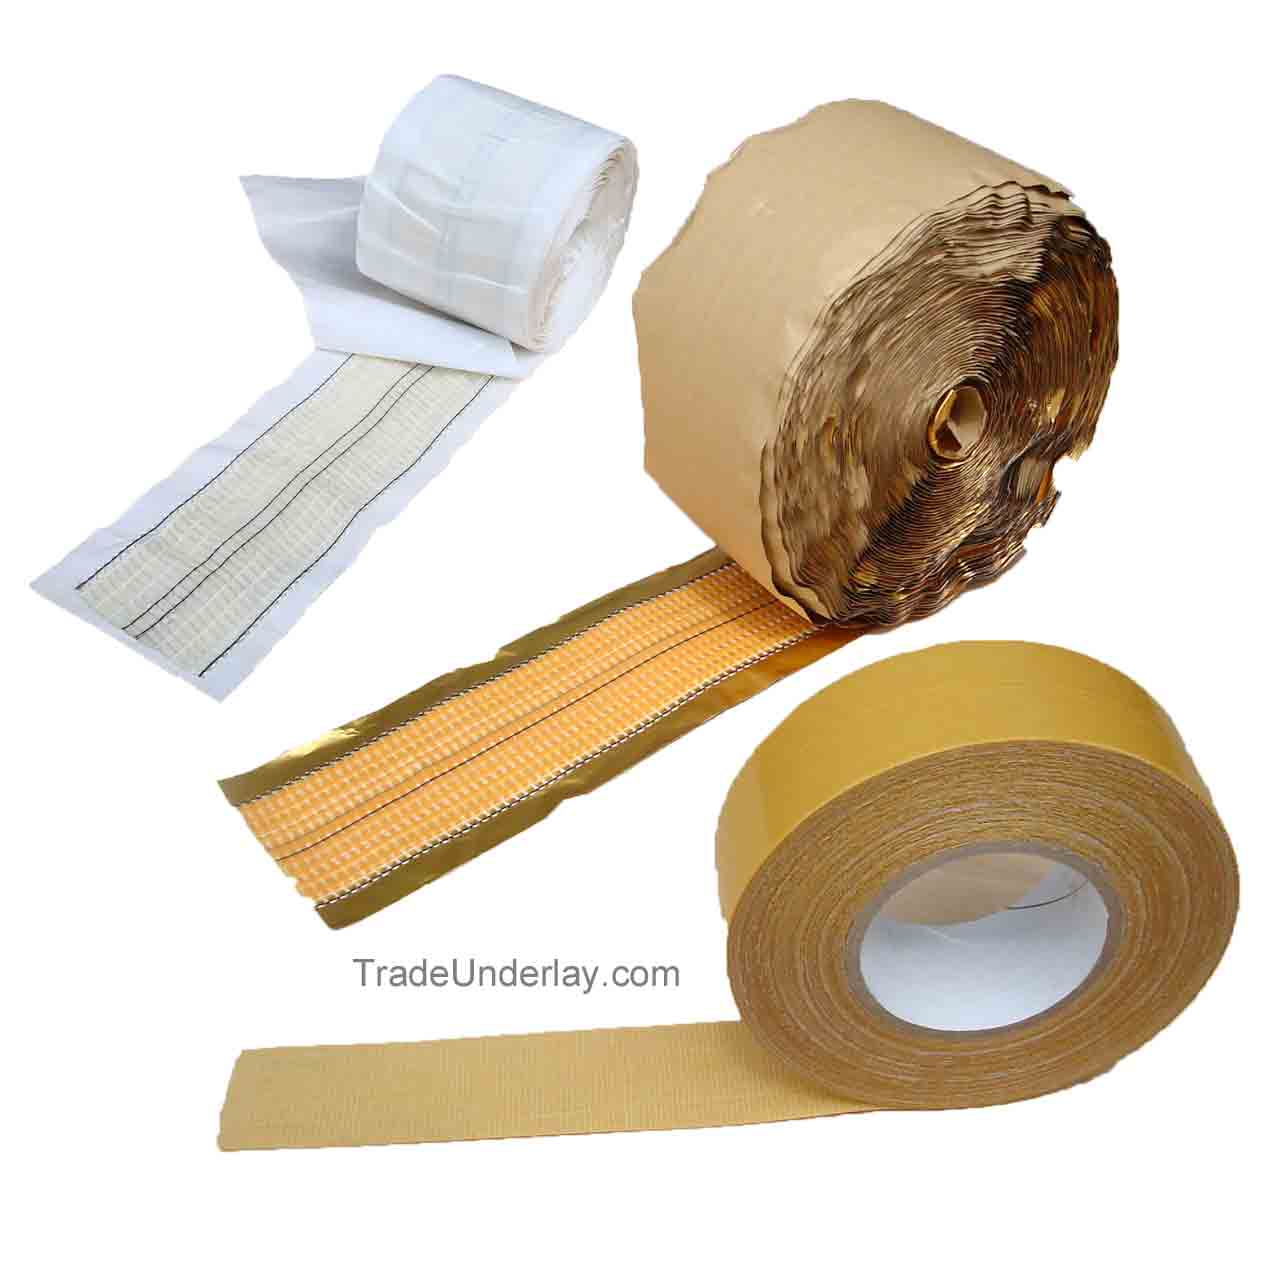 Buy Carpet Tape products on